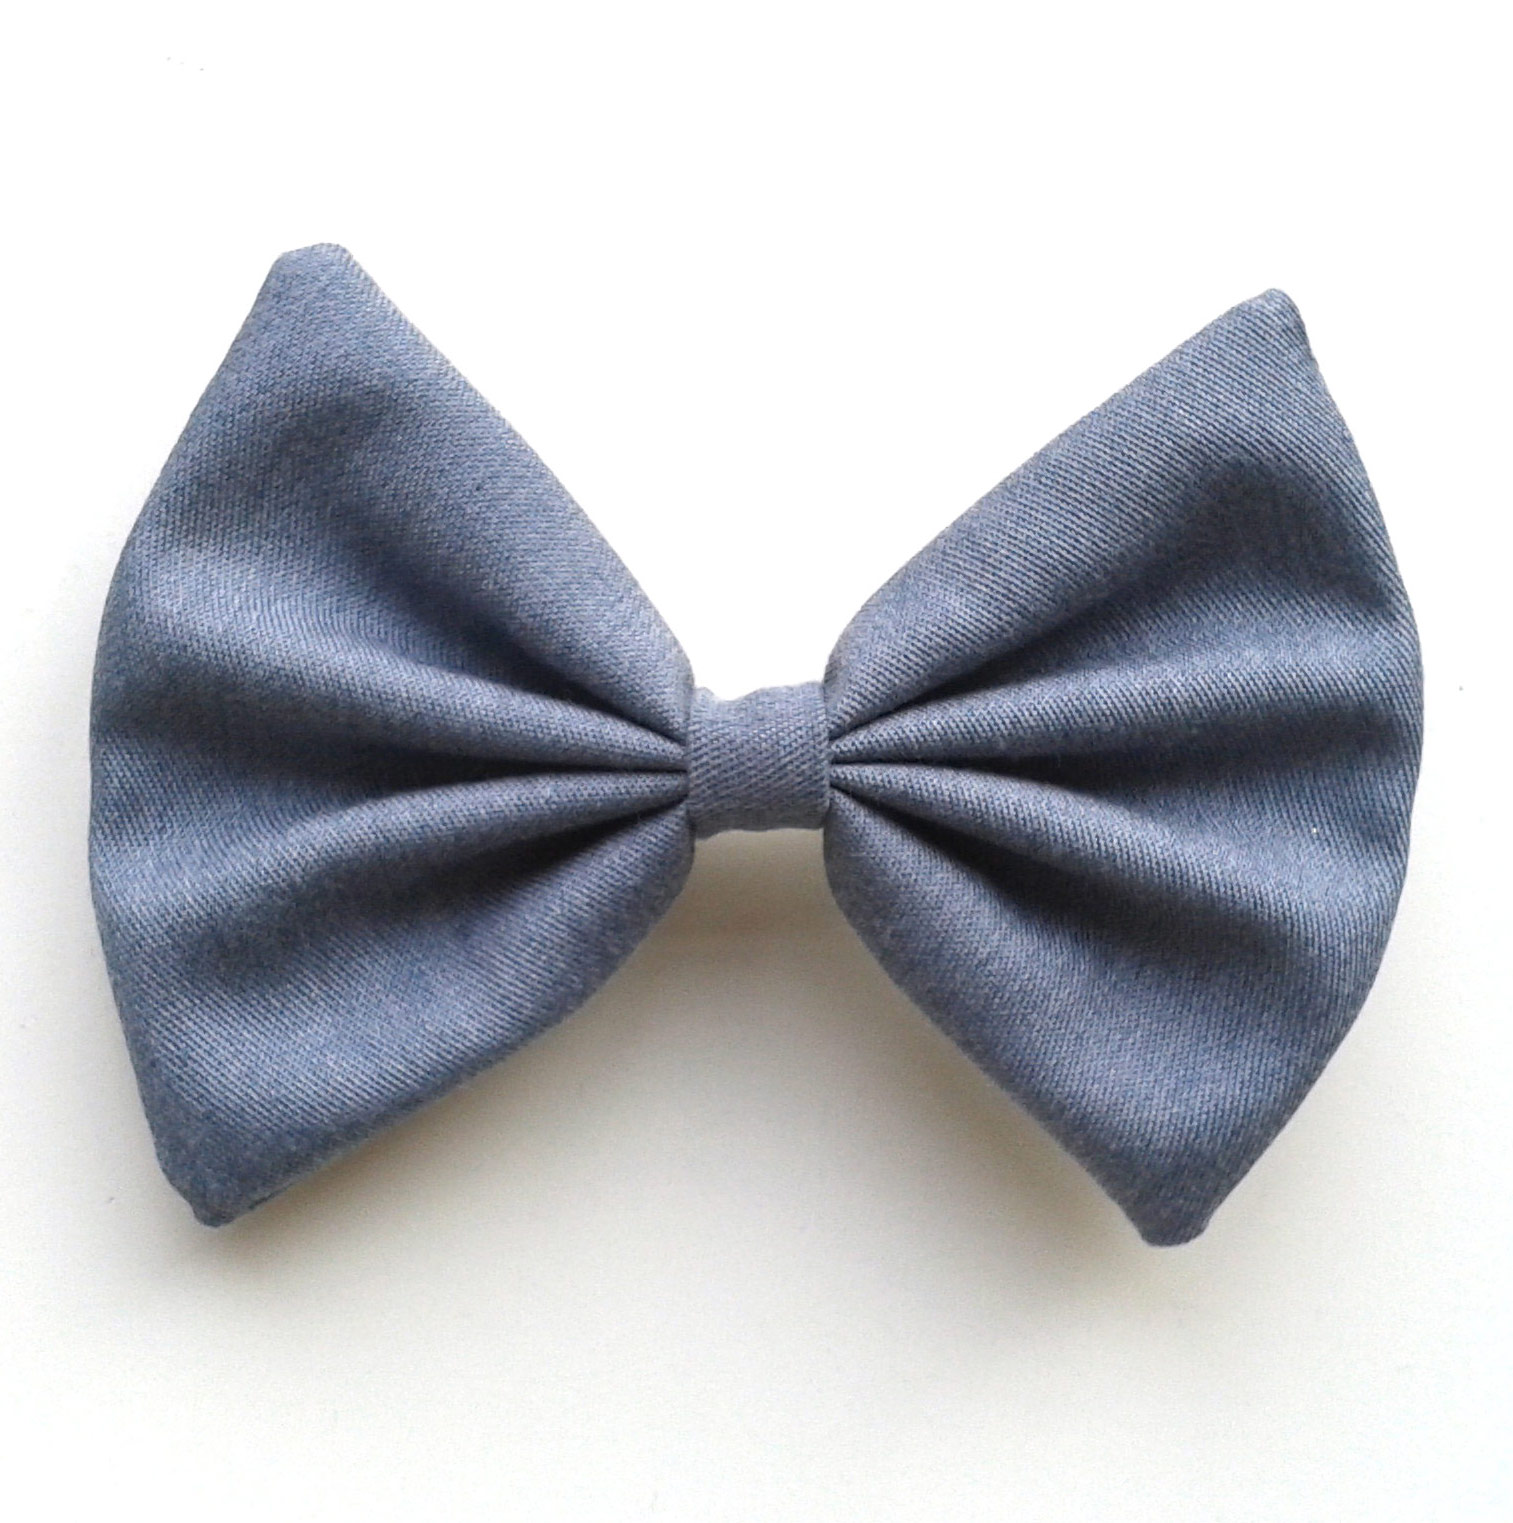 Looking for hair-bow instructions and supplies? Hair ribbons such as solid grosgrain ribbon, printed ribbon, polka dot ribbon, and satin ribbon, tulle, girl and baby tutus, hair alligator clips and other hair hardware, ponytail holders, fabric hair flowers and more! USA company ships same-day .